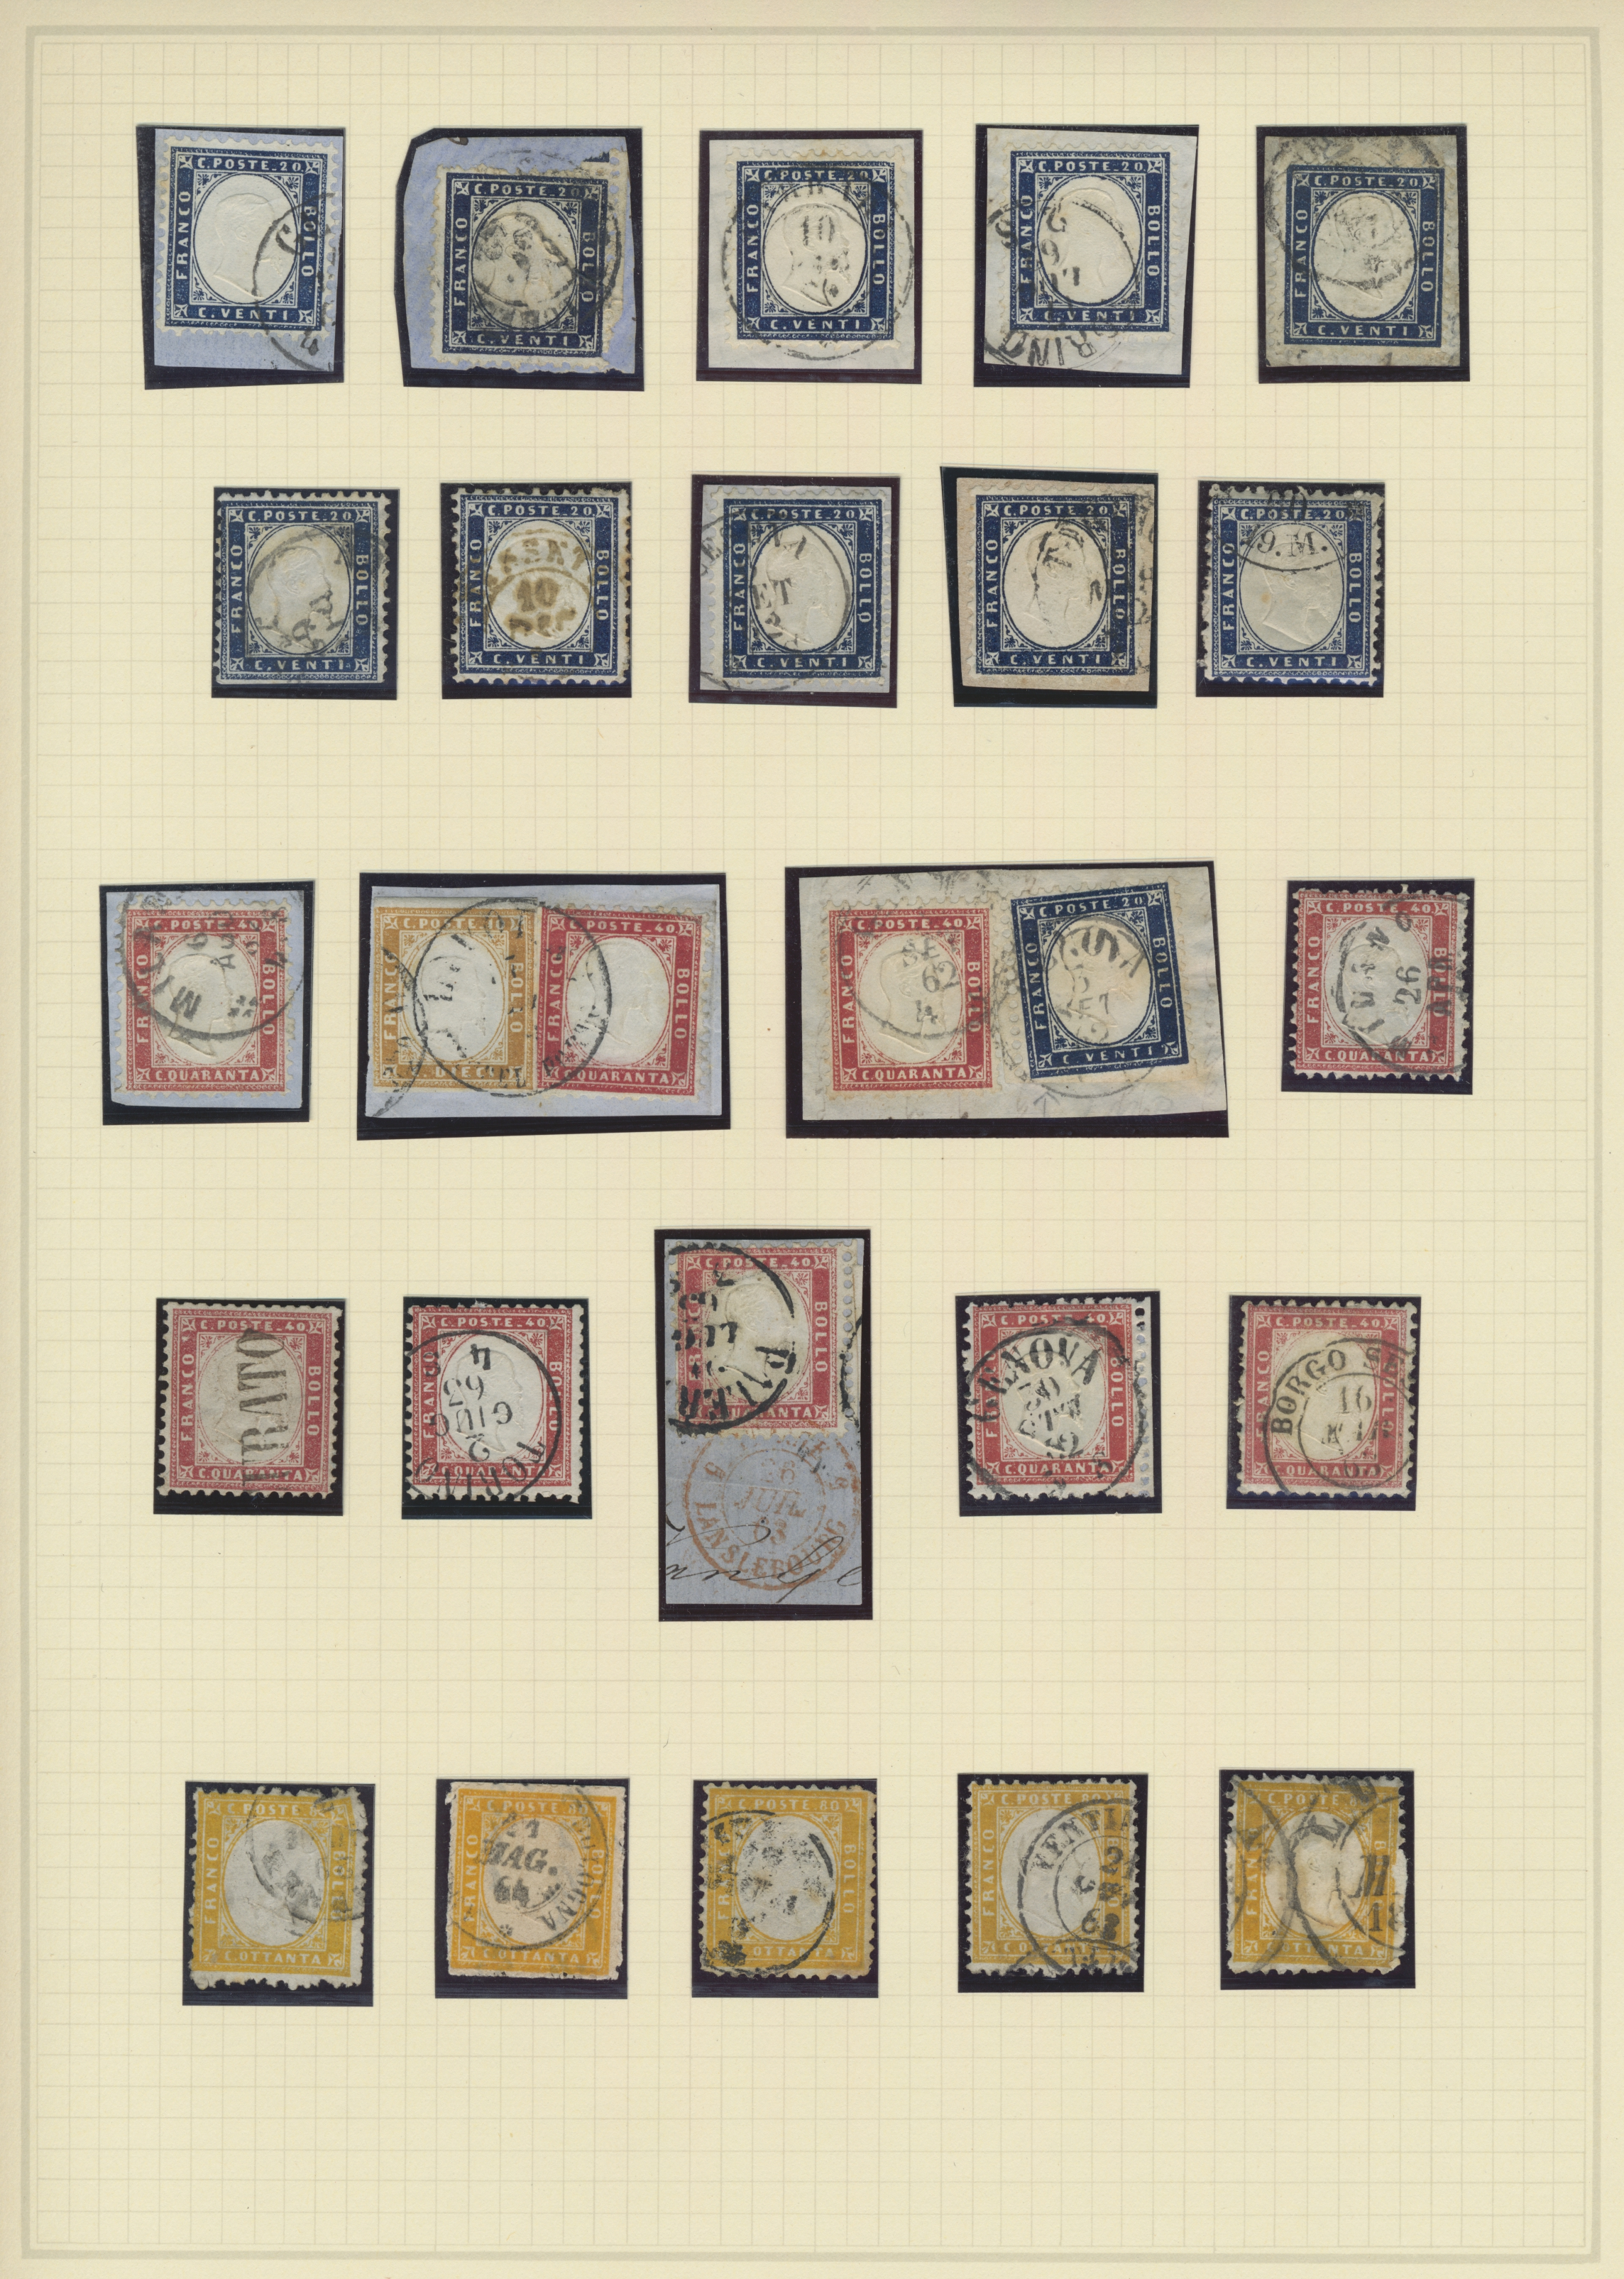 Lot 17262 - italien  -  Auktionshaus Christoph Gärtner GmbH & Co. KG Sale #48 collections Overseas  Airmail / Ship mail & Thematics